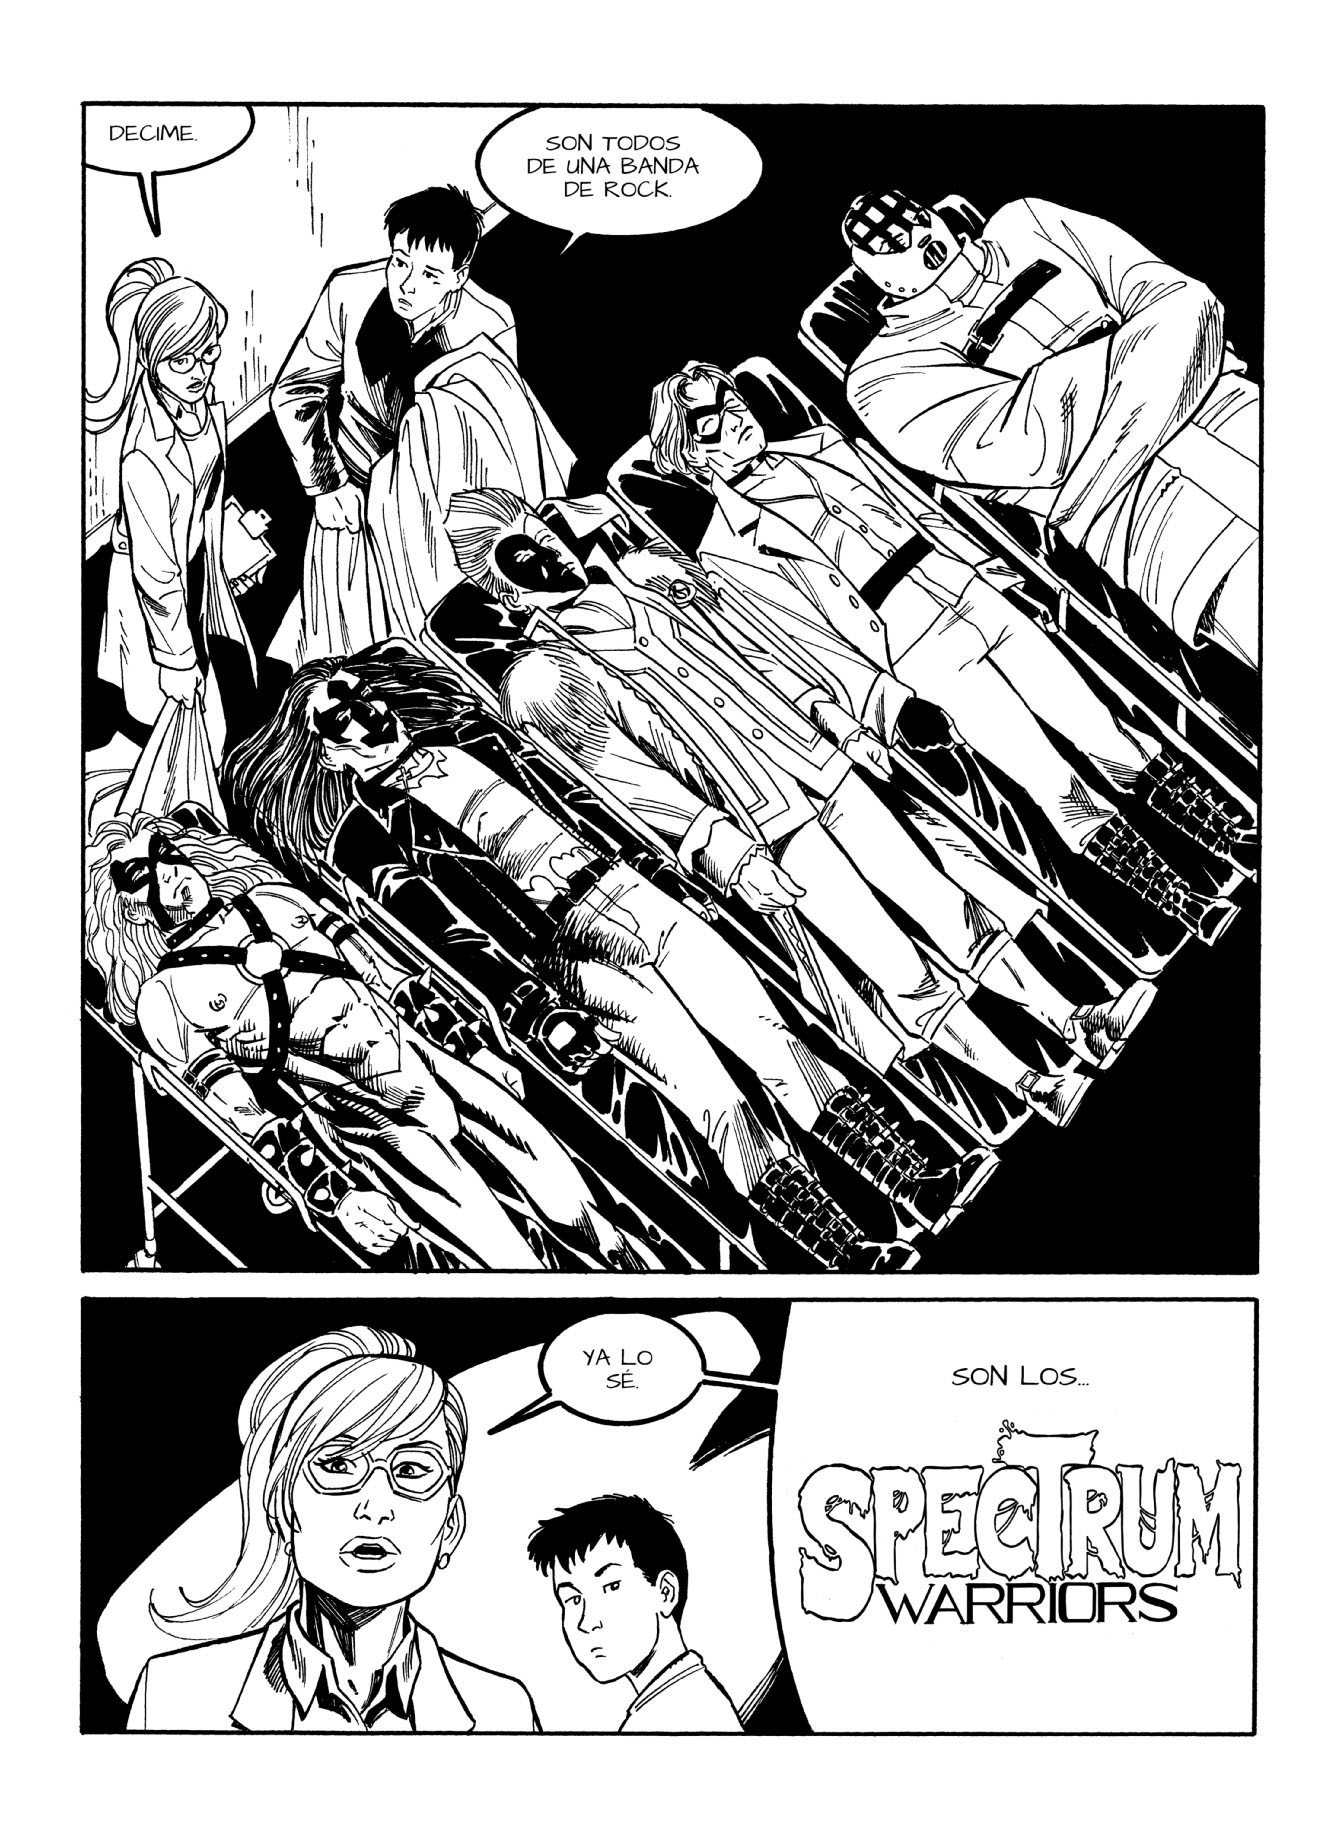 SpectrumWarriors-issue-01-page-08